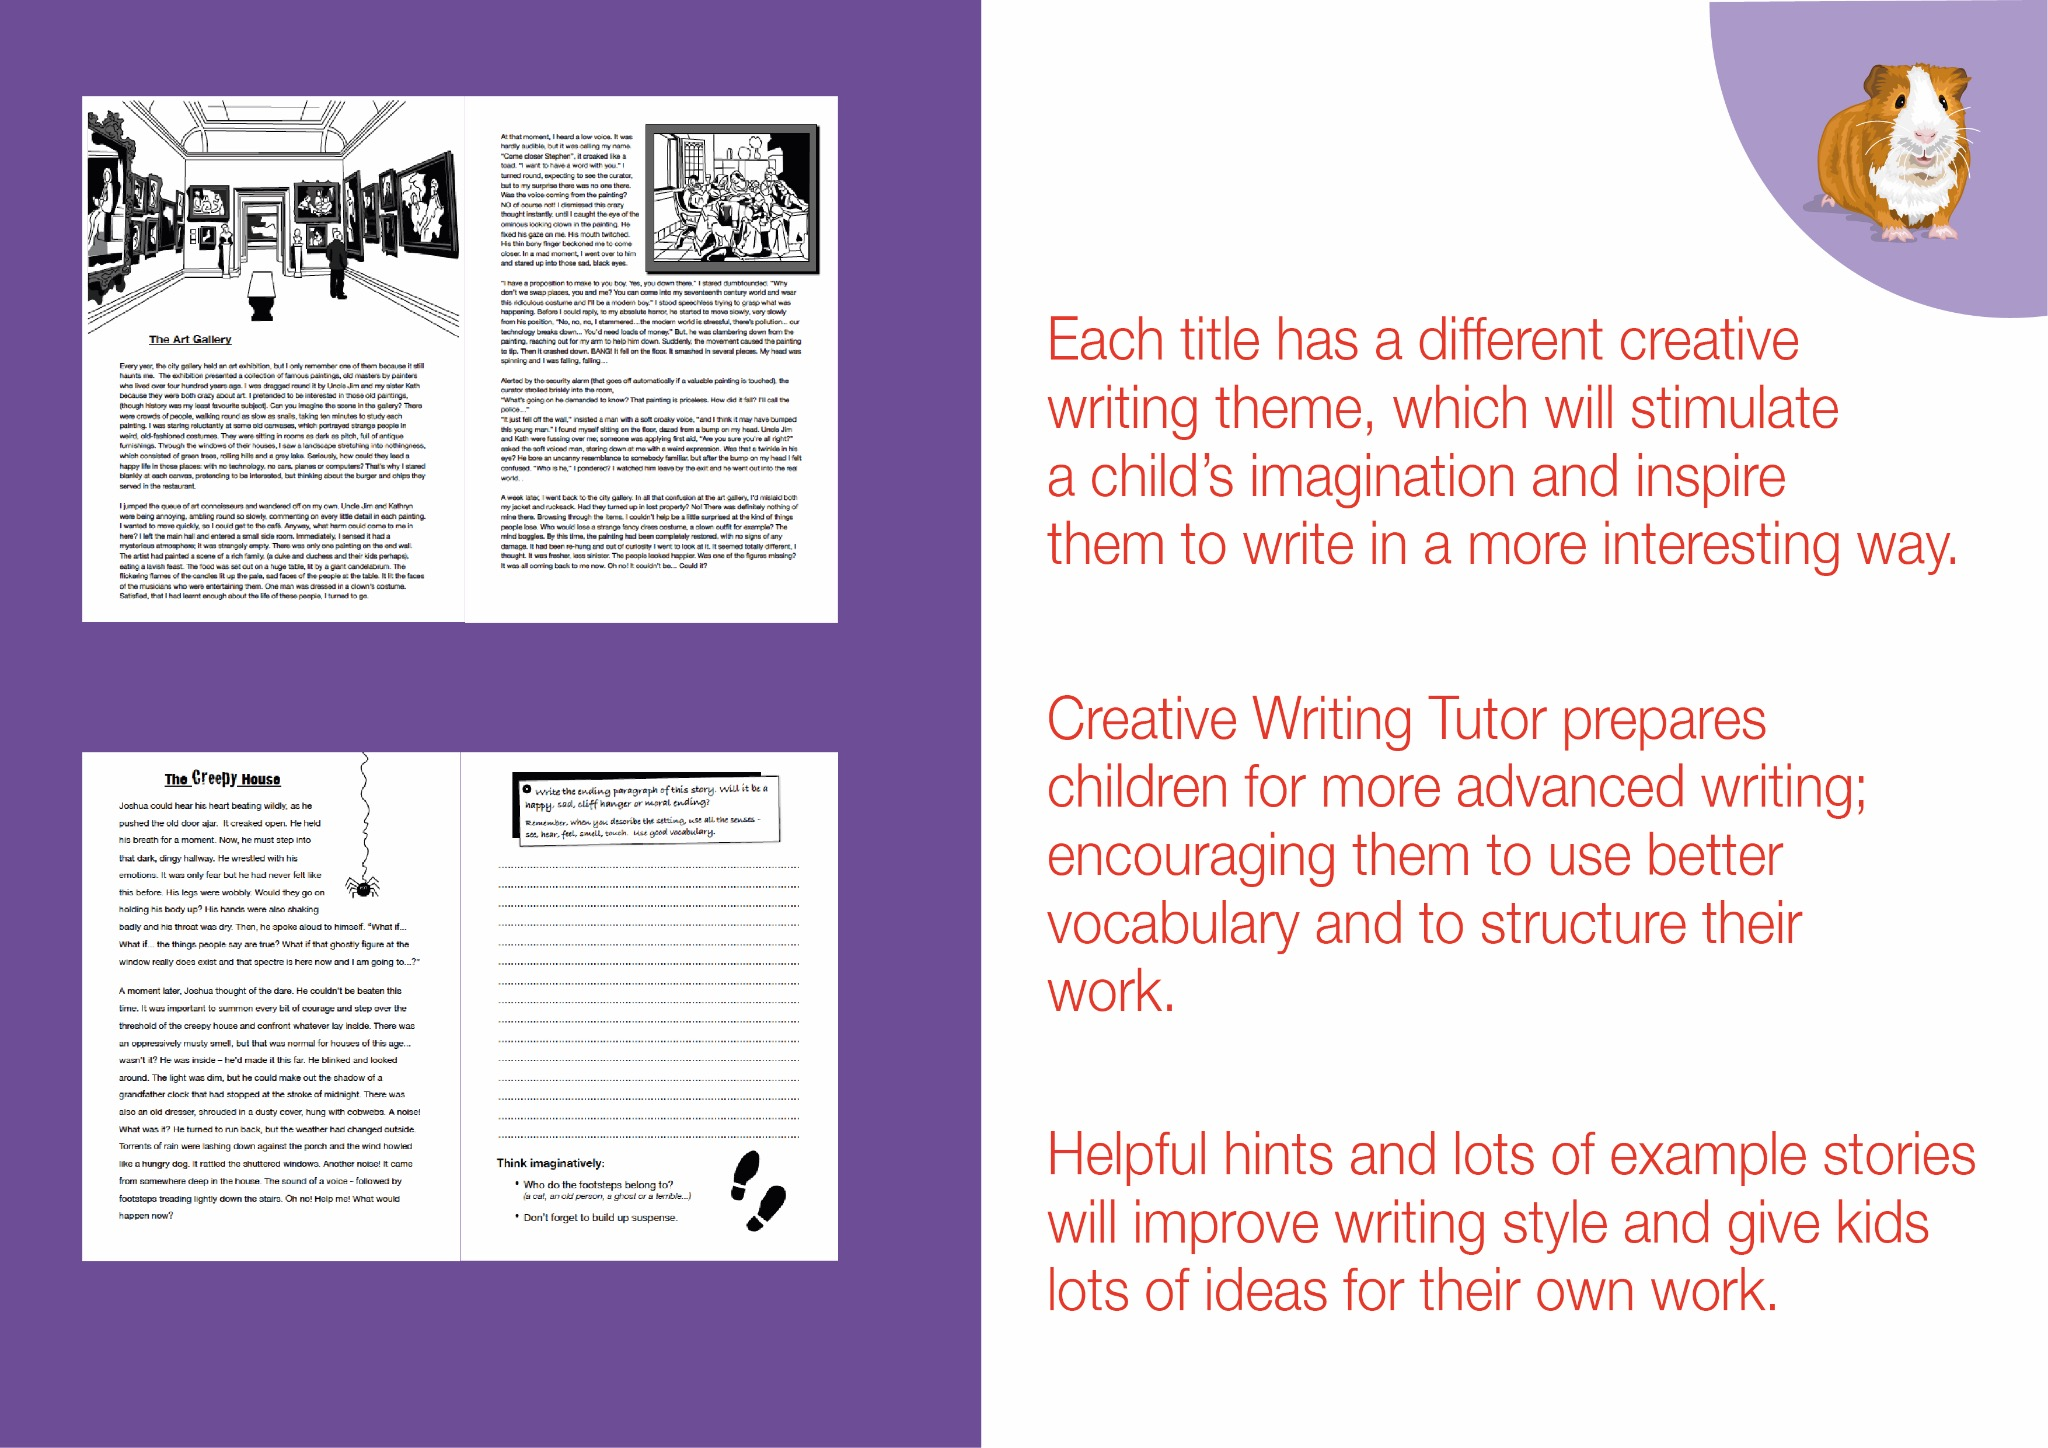 The Art Gallery: Brush Up On Your Writing Skills (Creative Writing Tutor) (ages 9-13 years)